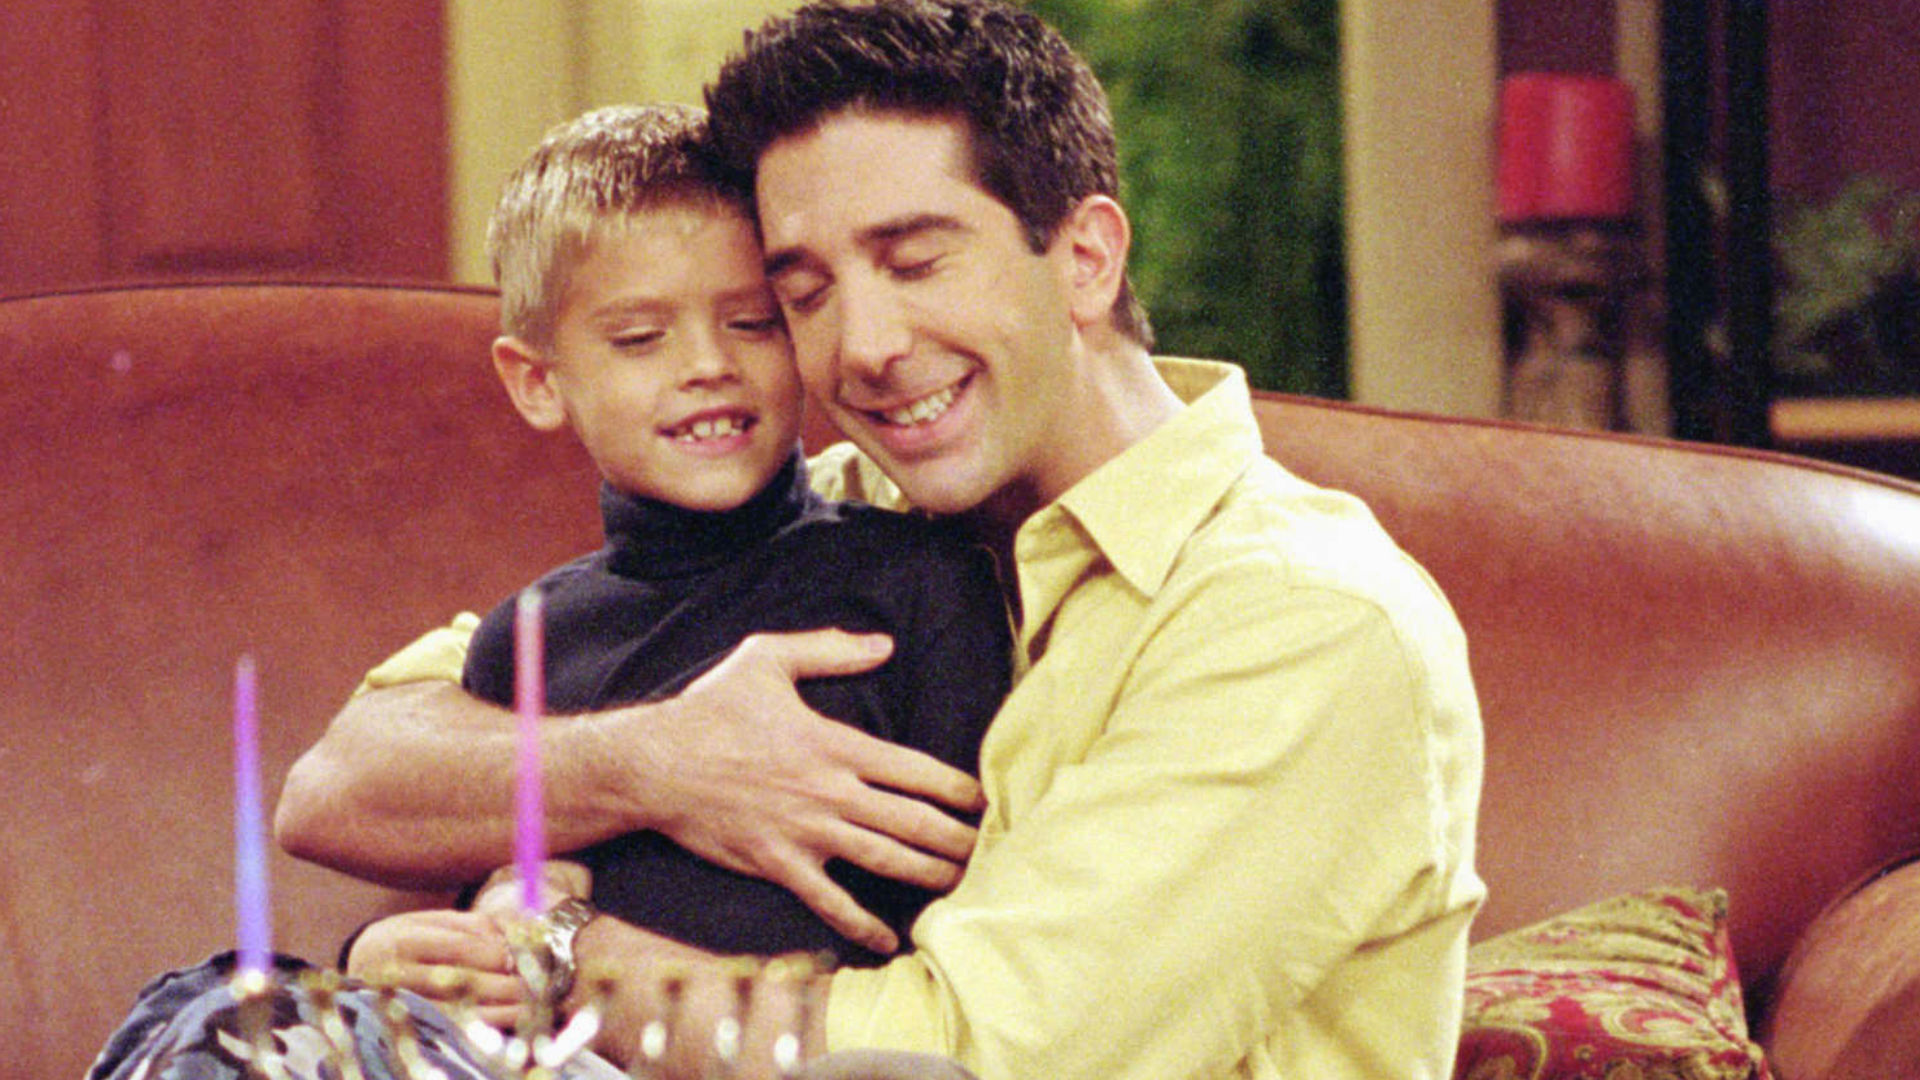 David Schwimmer as Ross in Friends